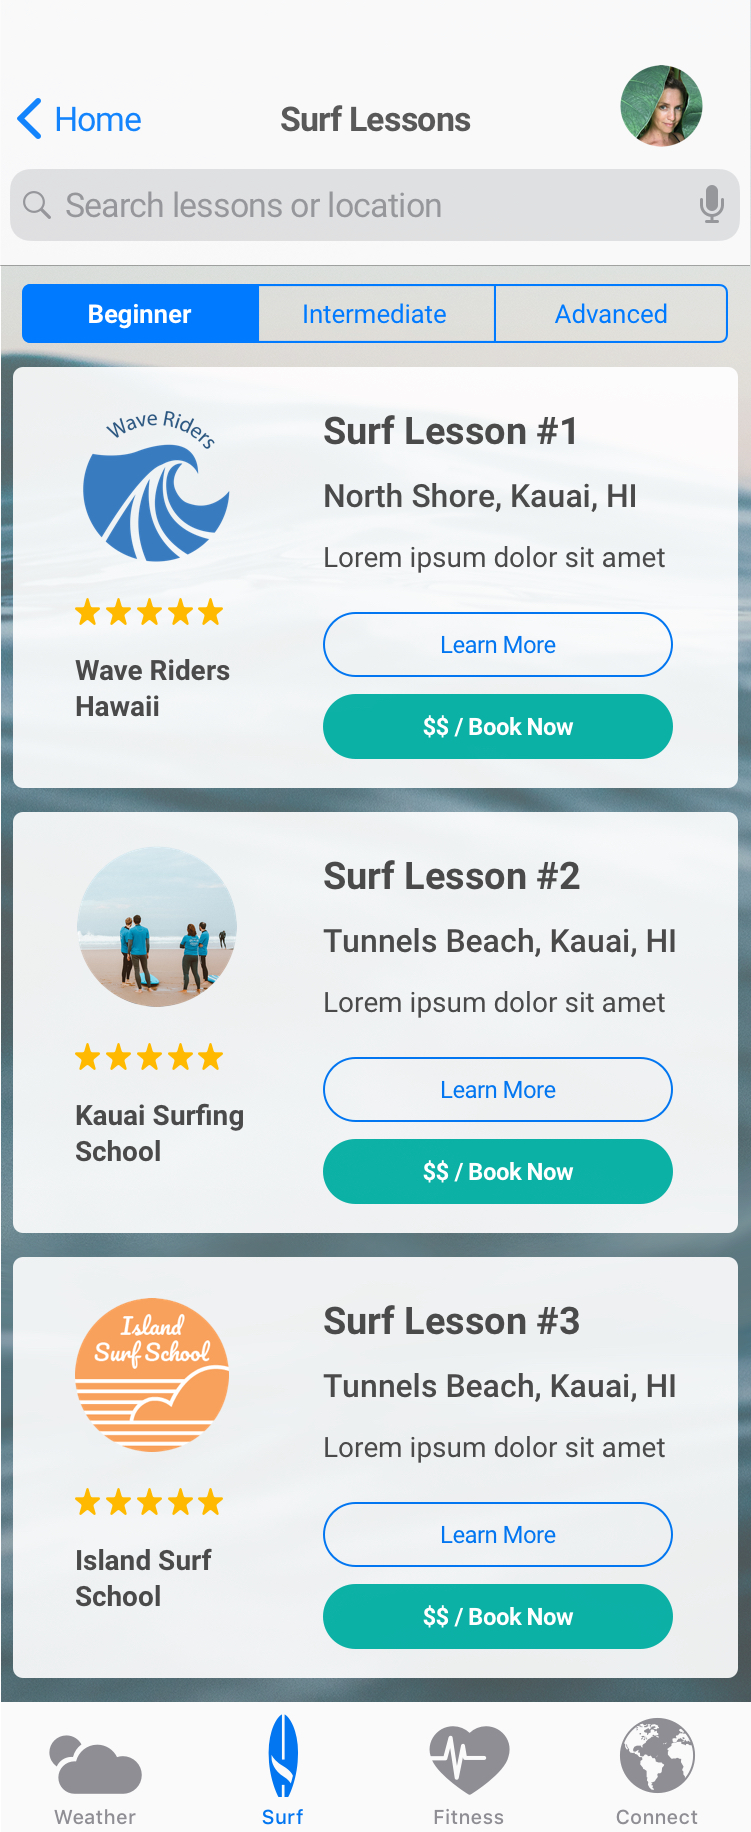 Surf Lessons Listing Screen.jpg